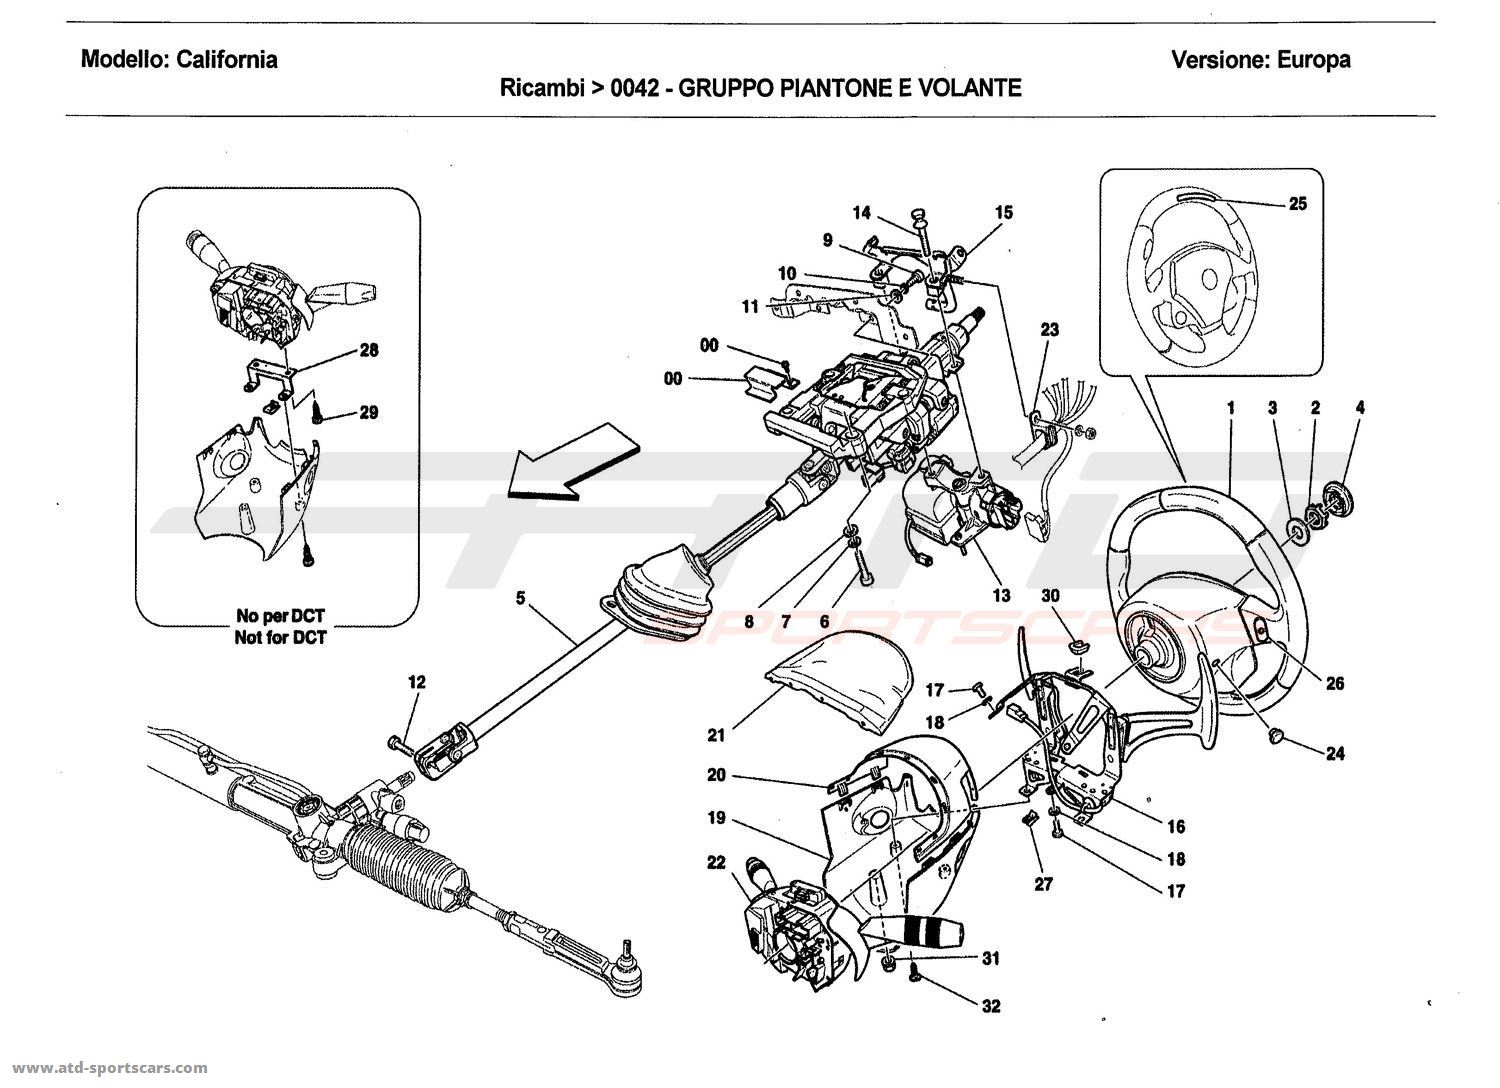 1969 Corvette Muffler Diagram